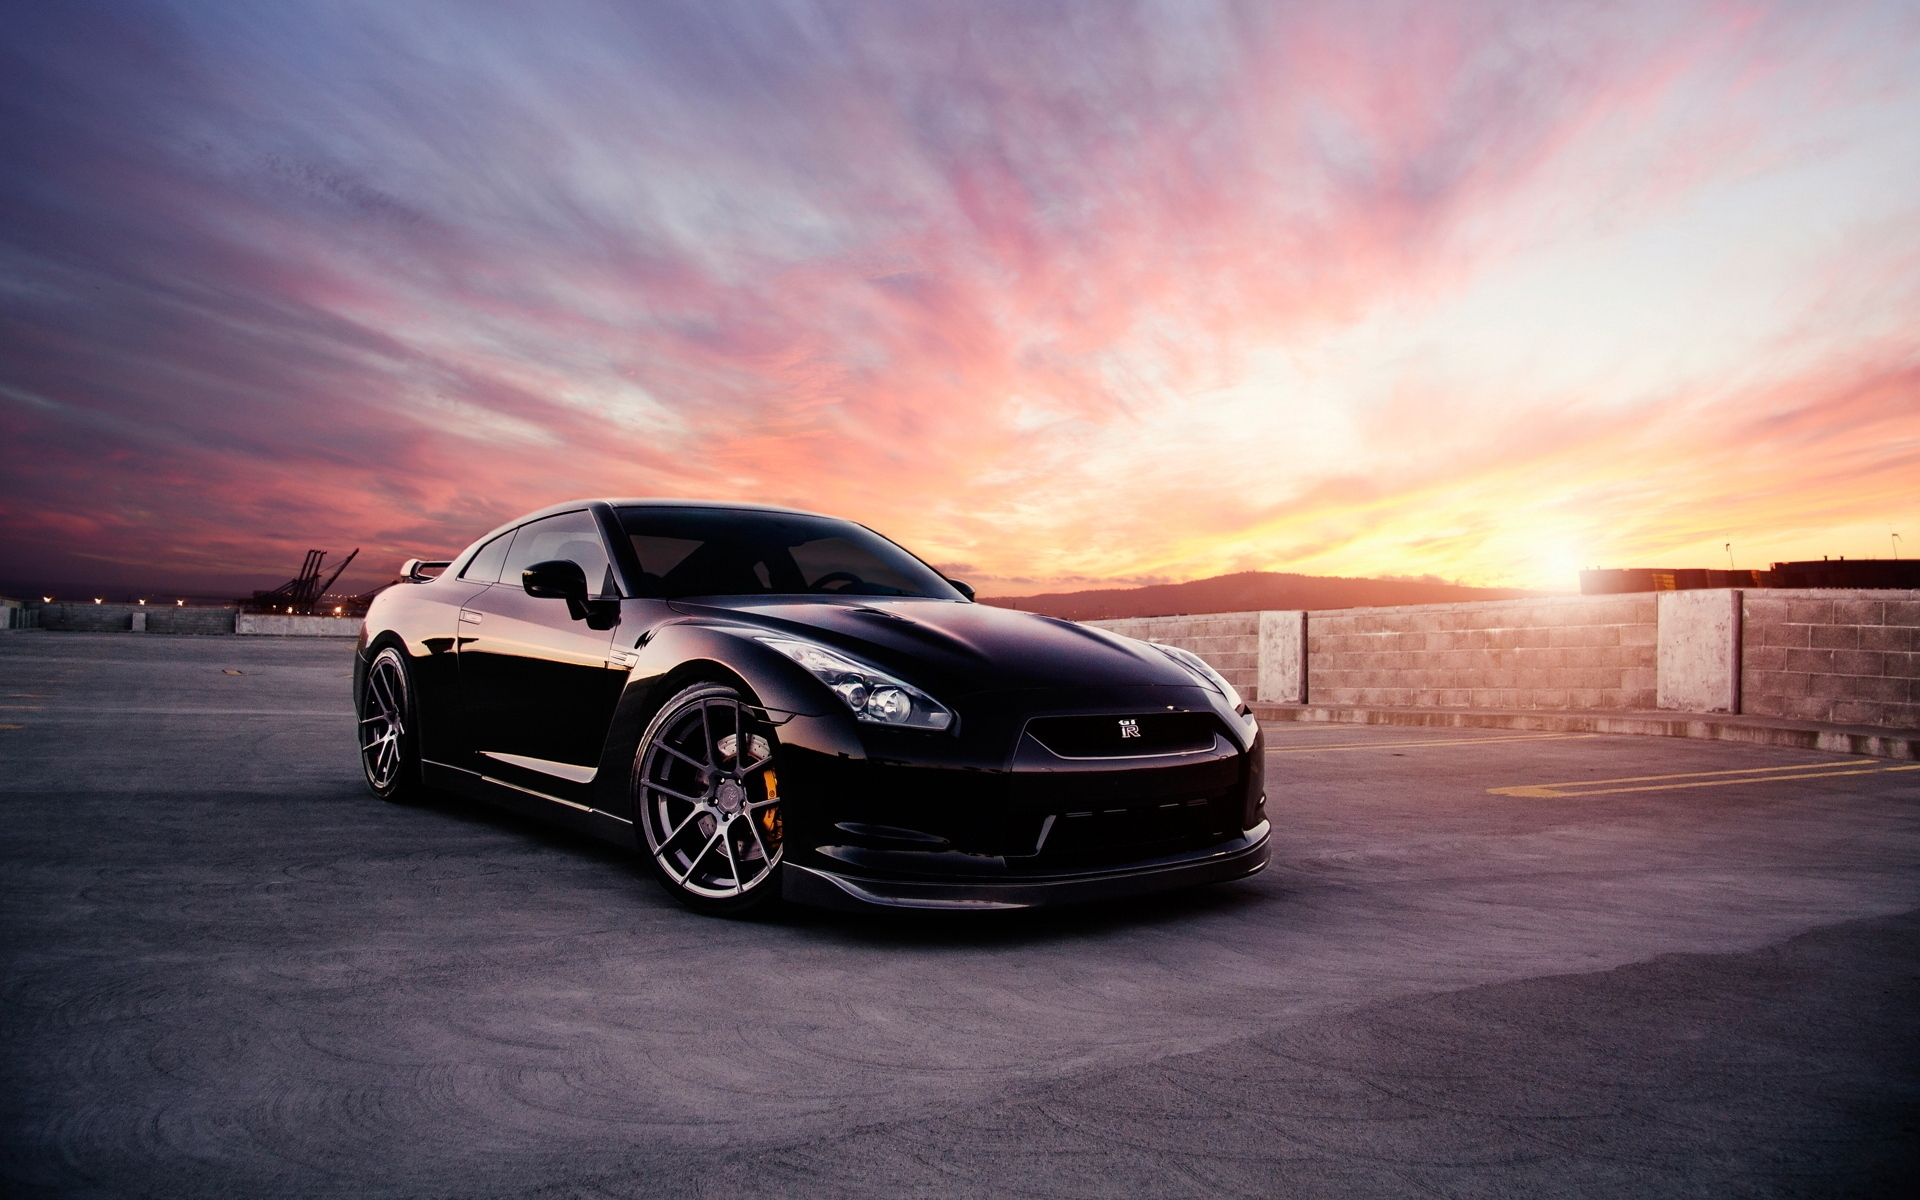 Fall Season Wallpapers Desktop Black Nissan Gtr Wallpapers Pixelstalk Net